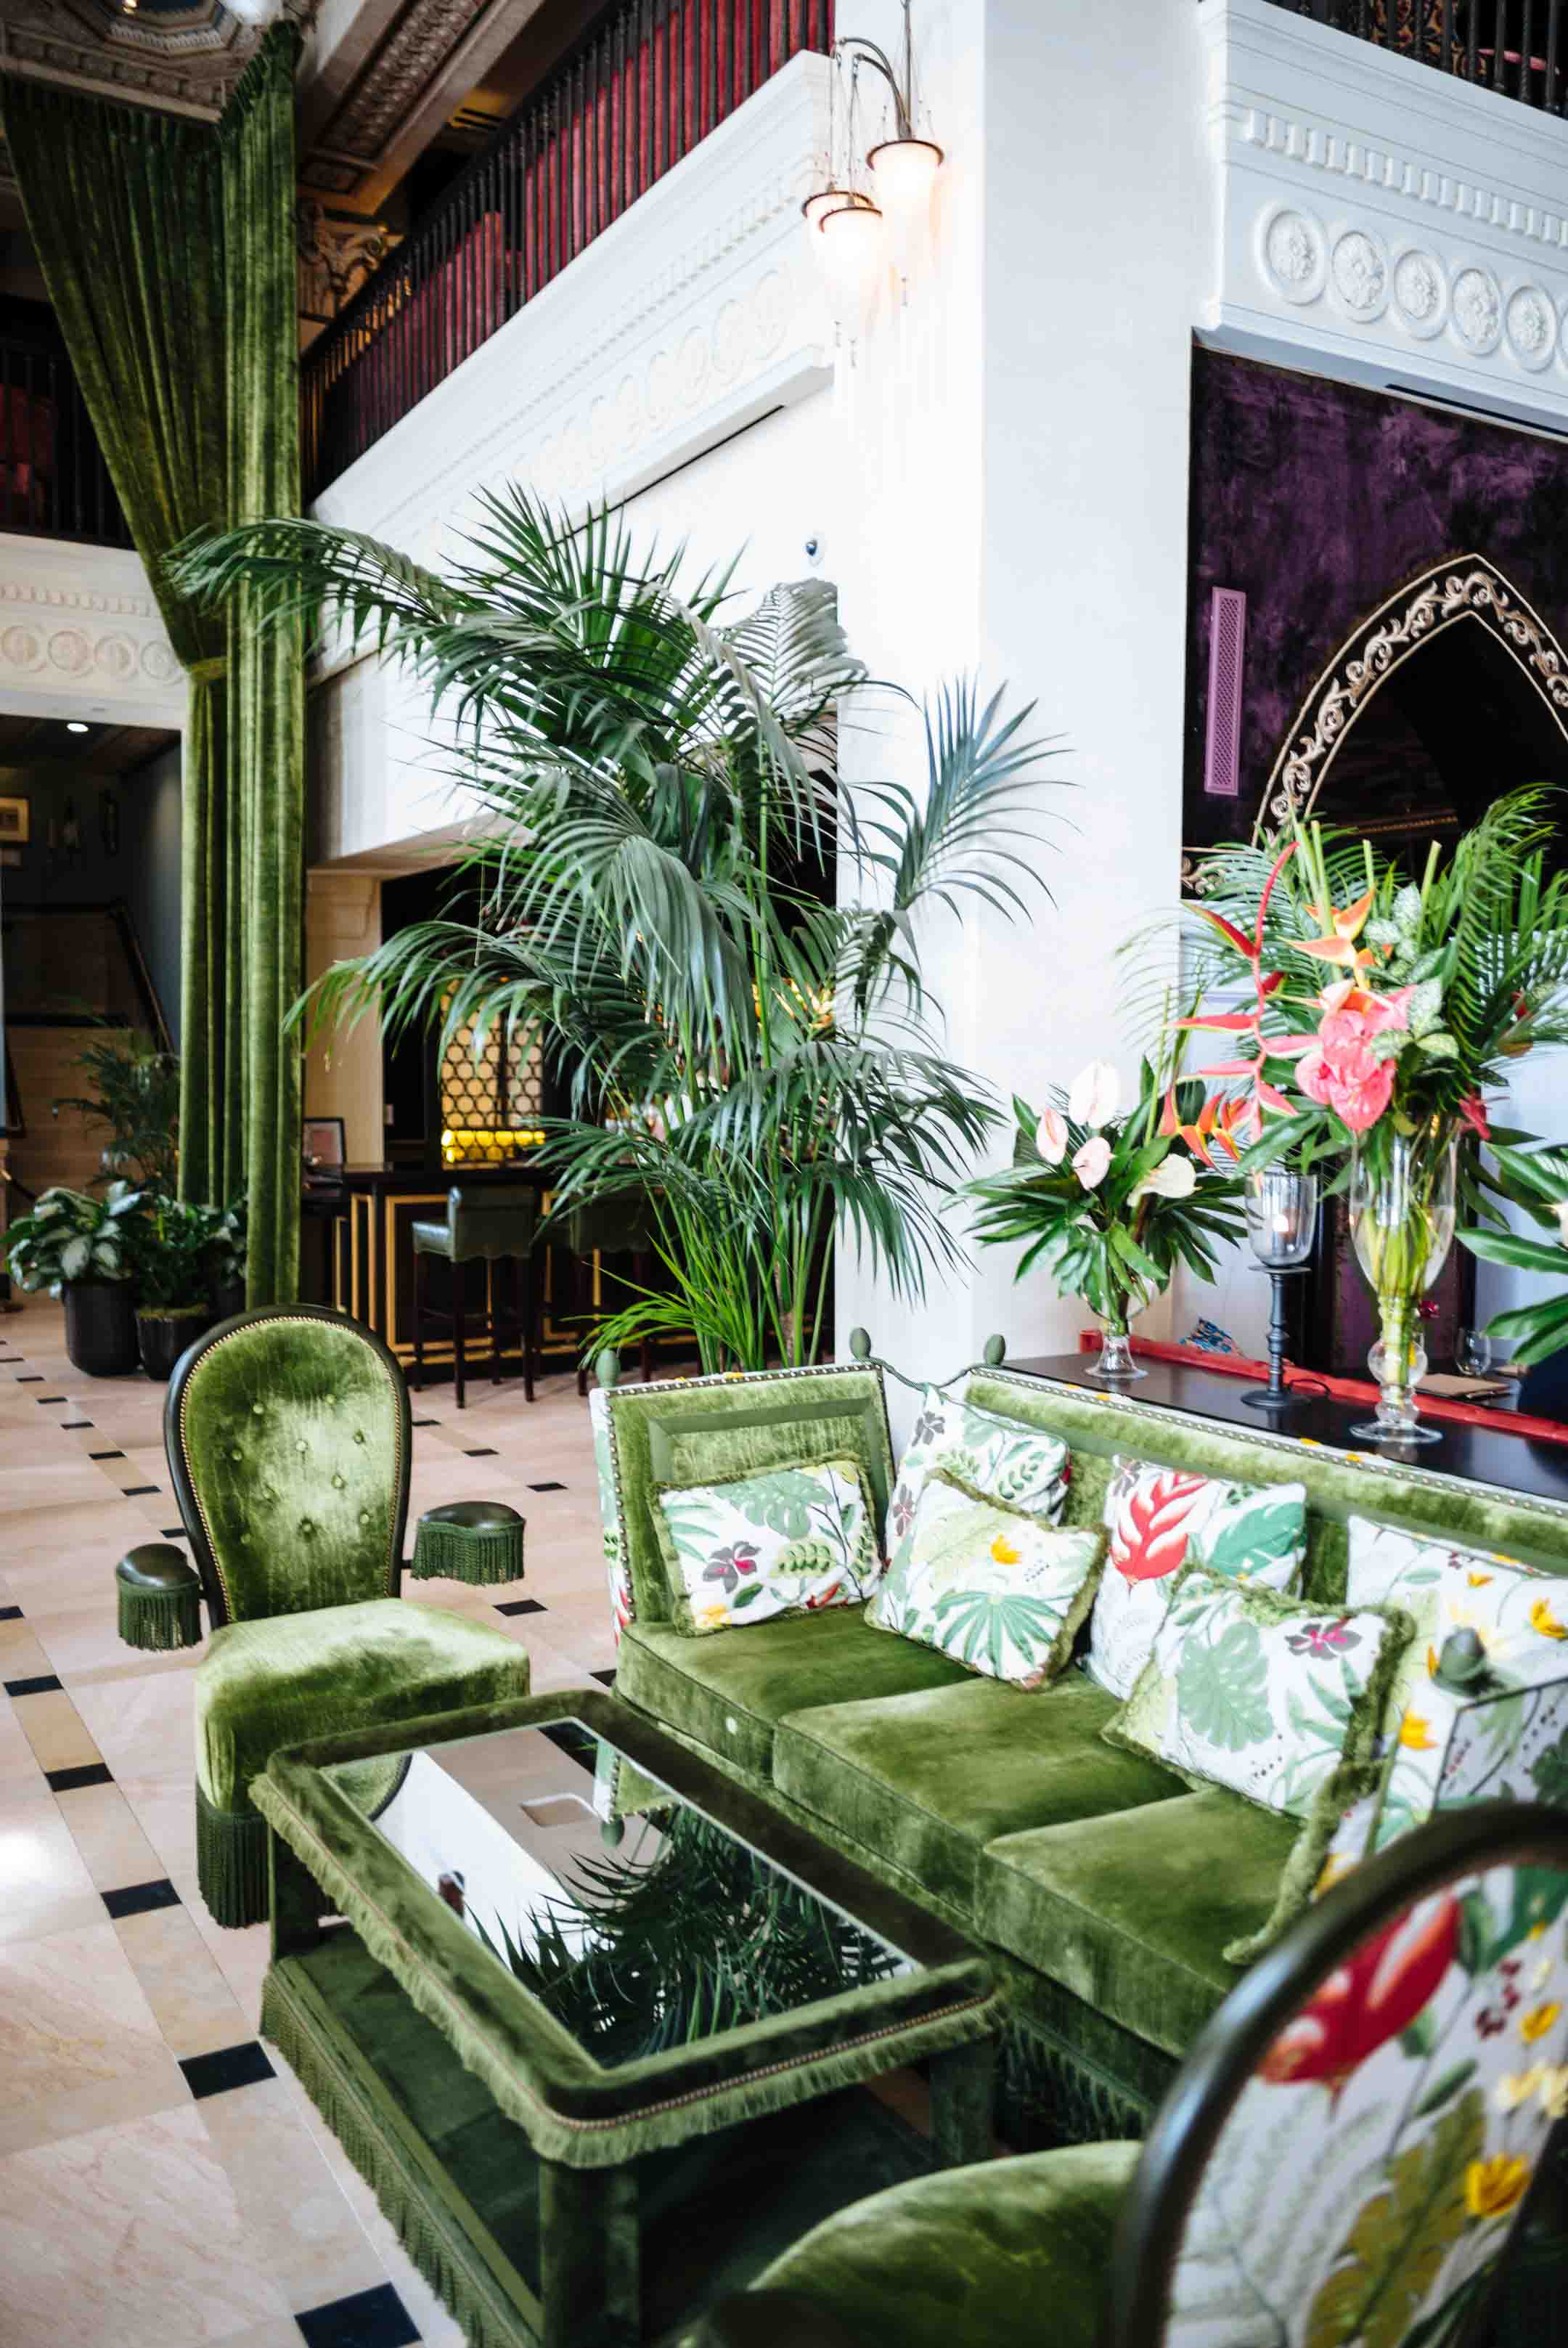 Green Decor in the lobby with green couches and flowers at The Nomad Hotel in downtown LA restaurant